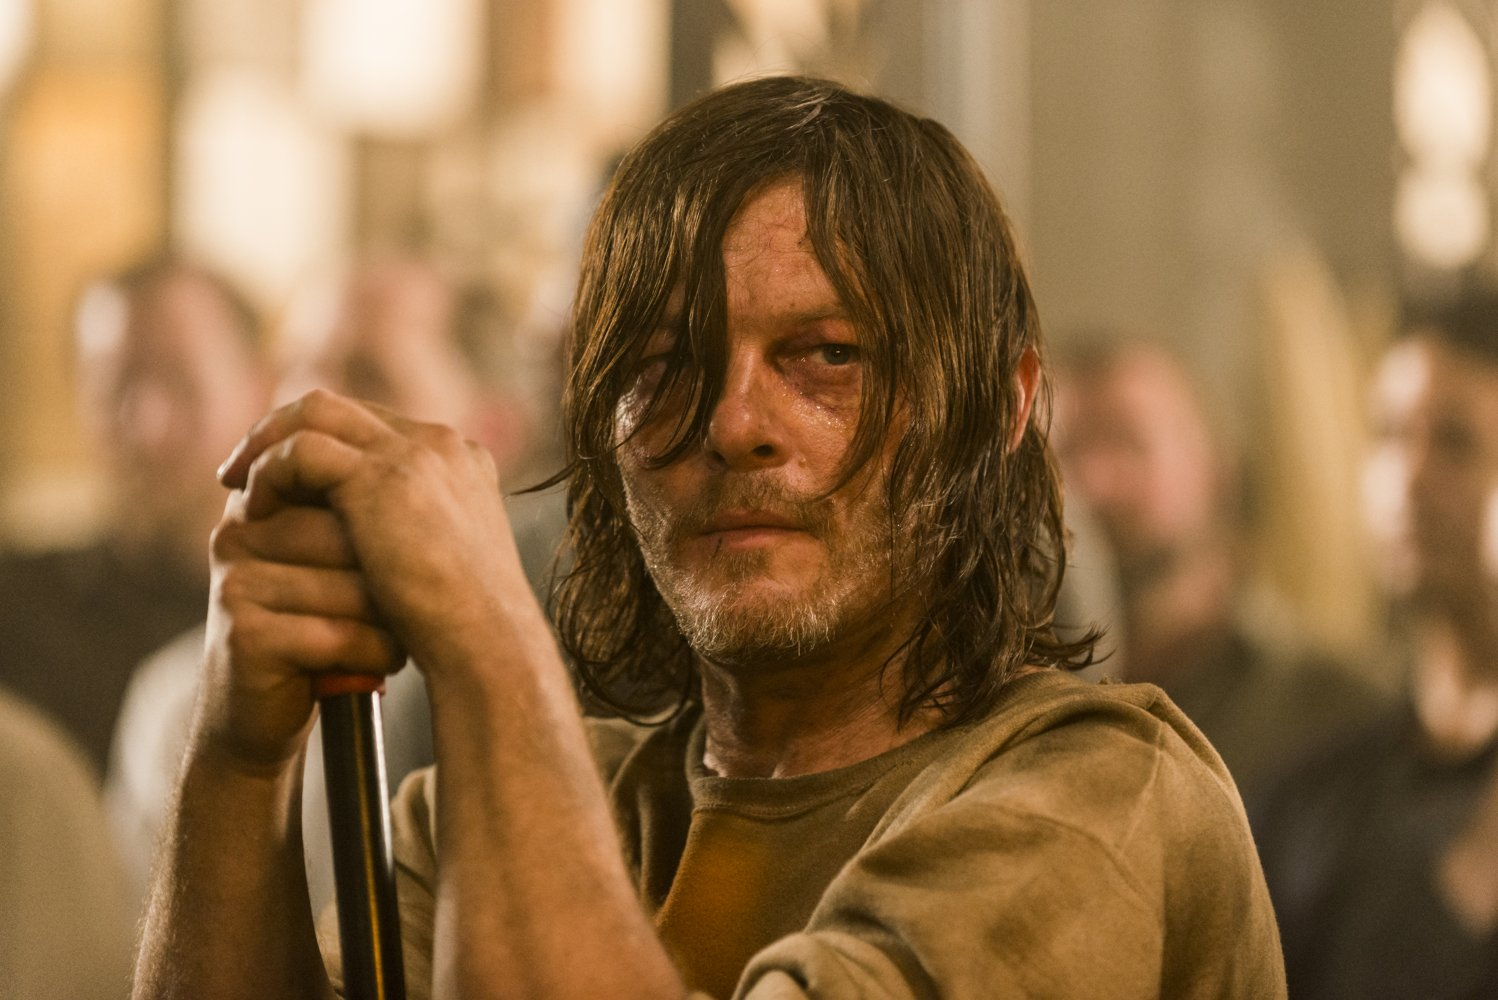 Daryl limpia en el Santuario en el episodio Sing Me a Song de The Walking Dead